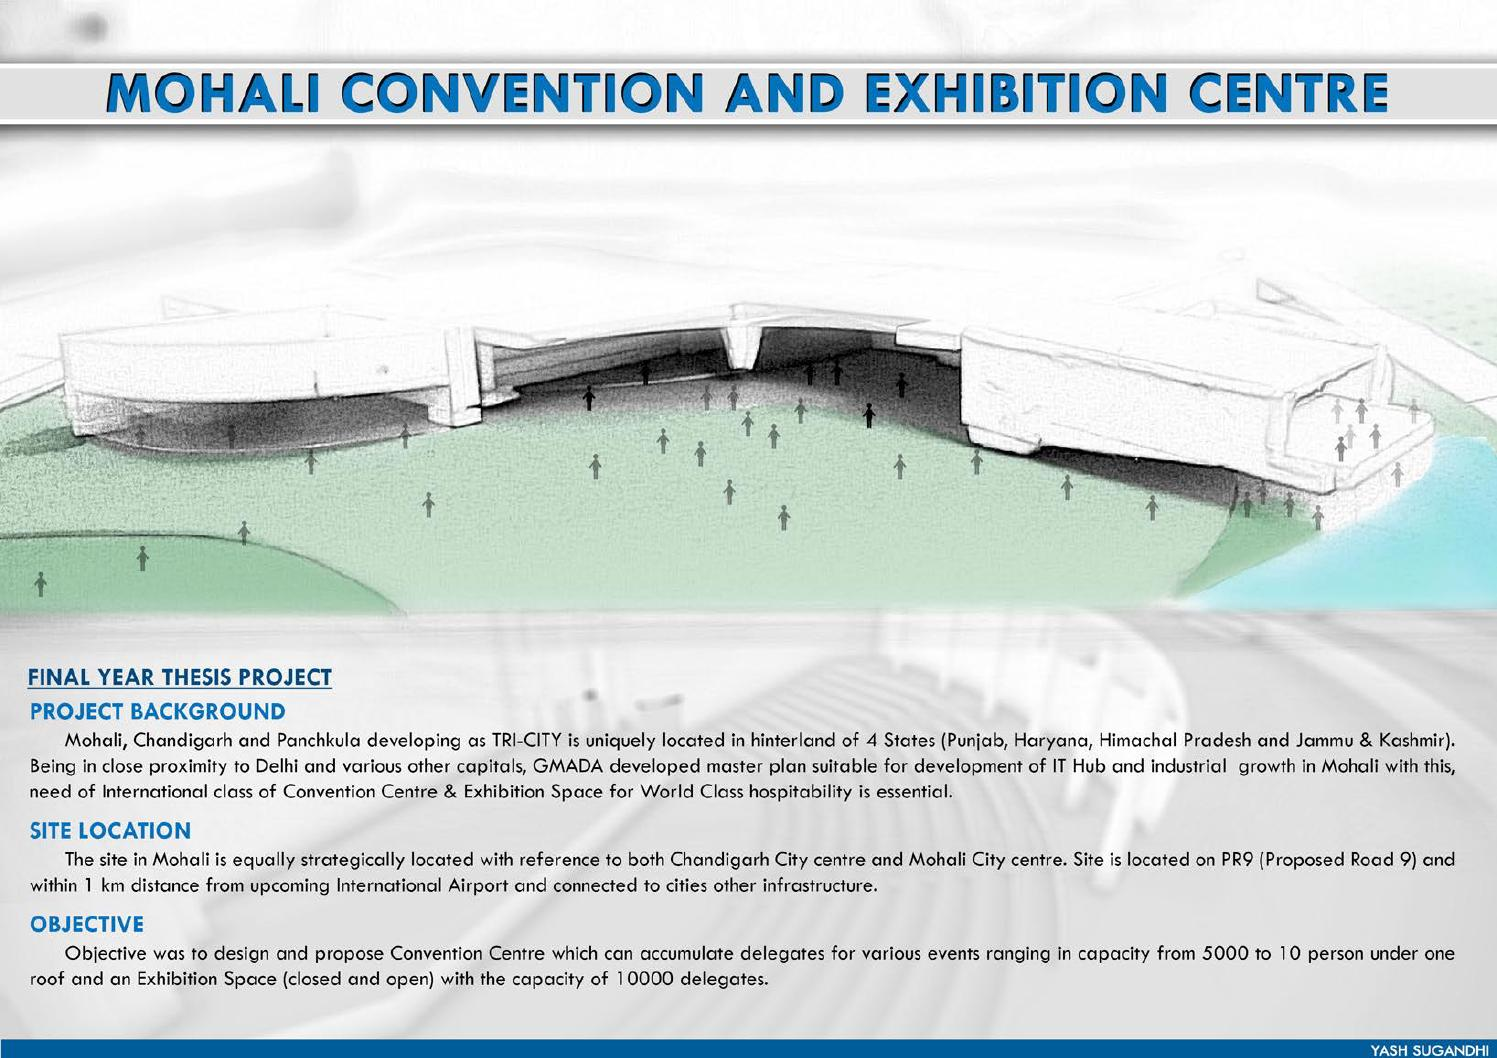 thesis report on convention center 1 convention center design & requirements study survey of leading convention & exhibition producers on convention center design & functionality requirements with opinion of contiguous & non.